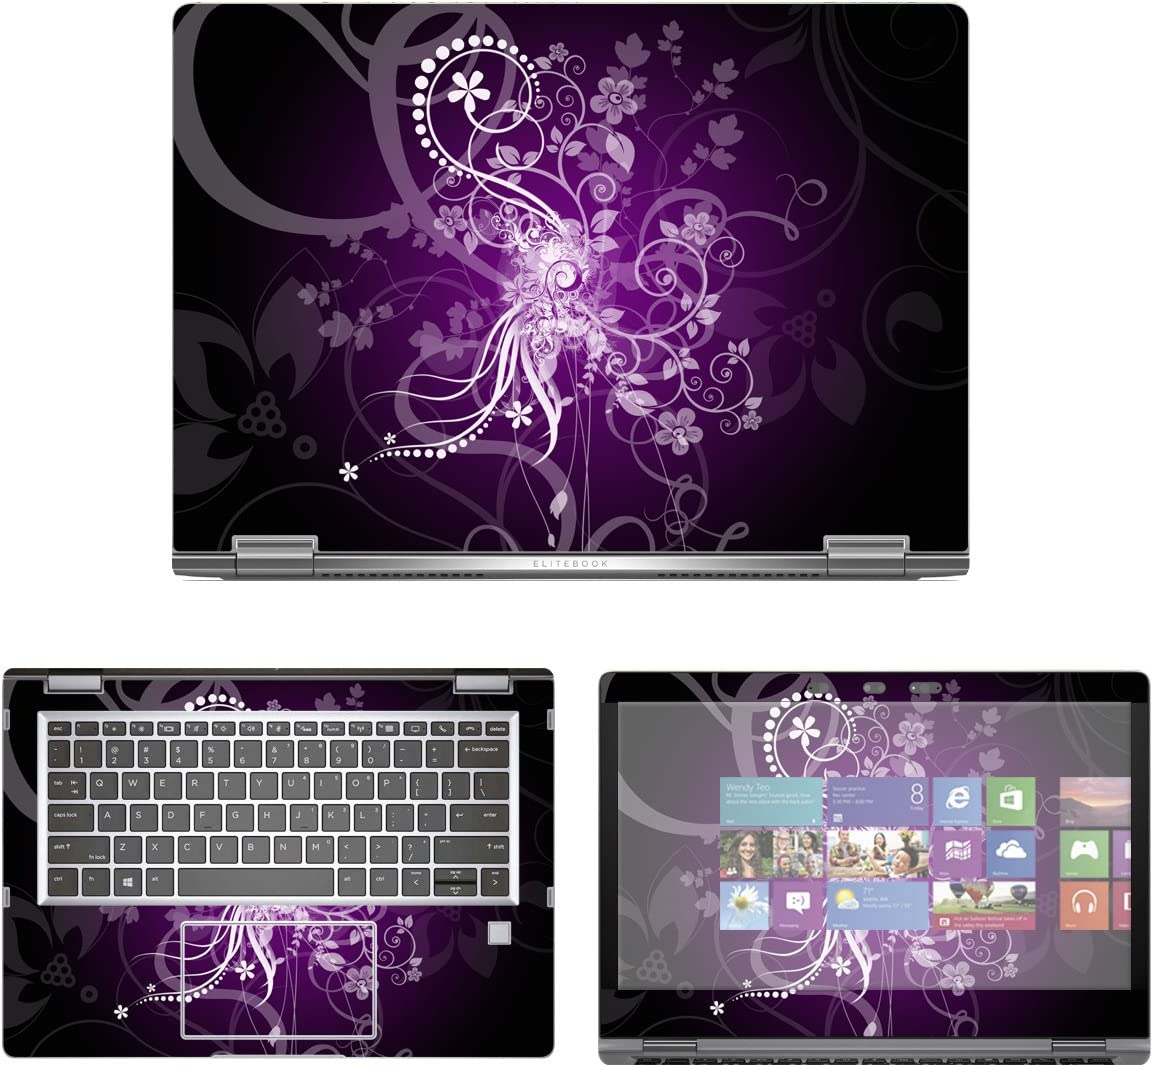 """decalrus - Protective Decal Floral Skin Sticker for HP EliteBook X360 1030 G2 (13.3"""" Screen) case Cover wrap HPelitebk1030g2-15"""